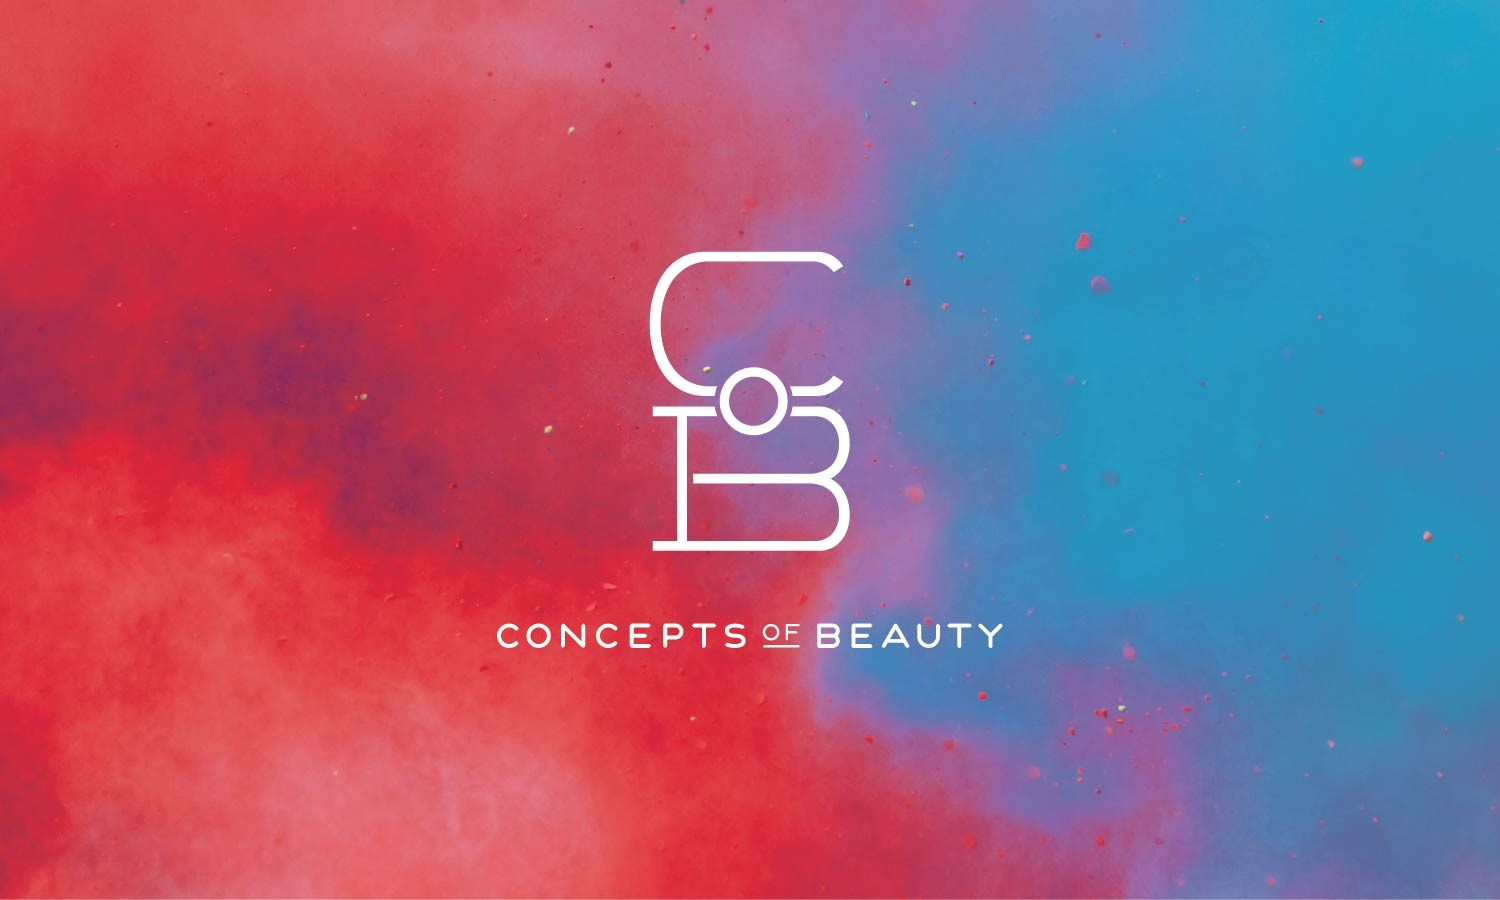 Brand Development and Packaging for Concepts of Beauty